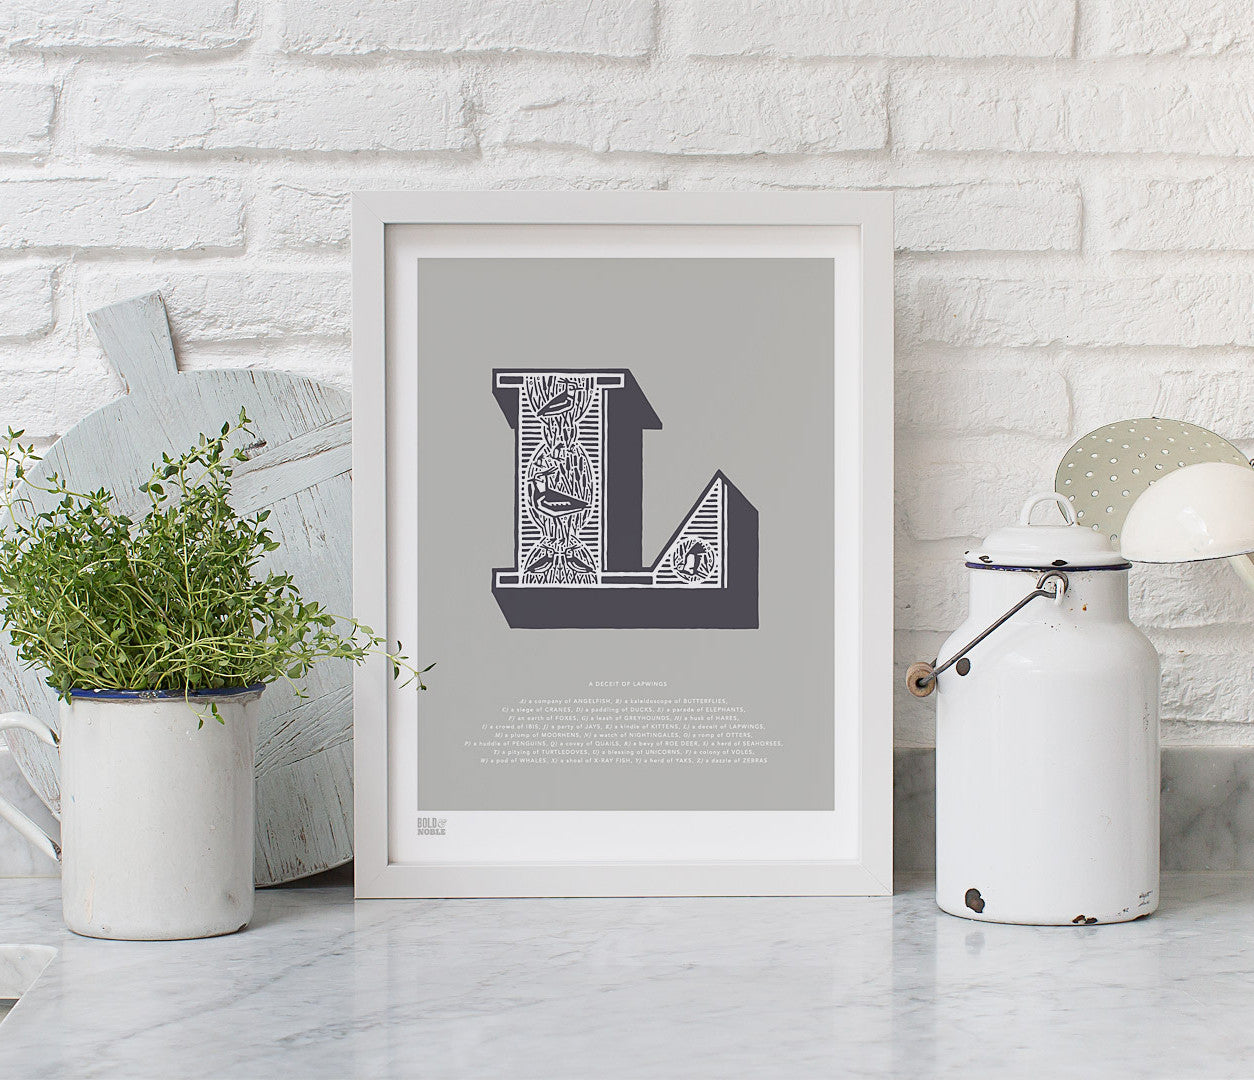 Pictures and Wall Art, Screen Printed Illustrated Letter L design in putty grey